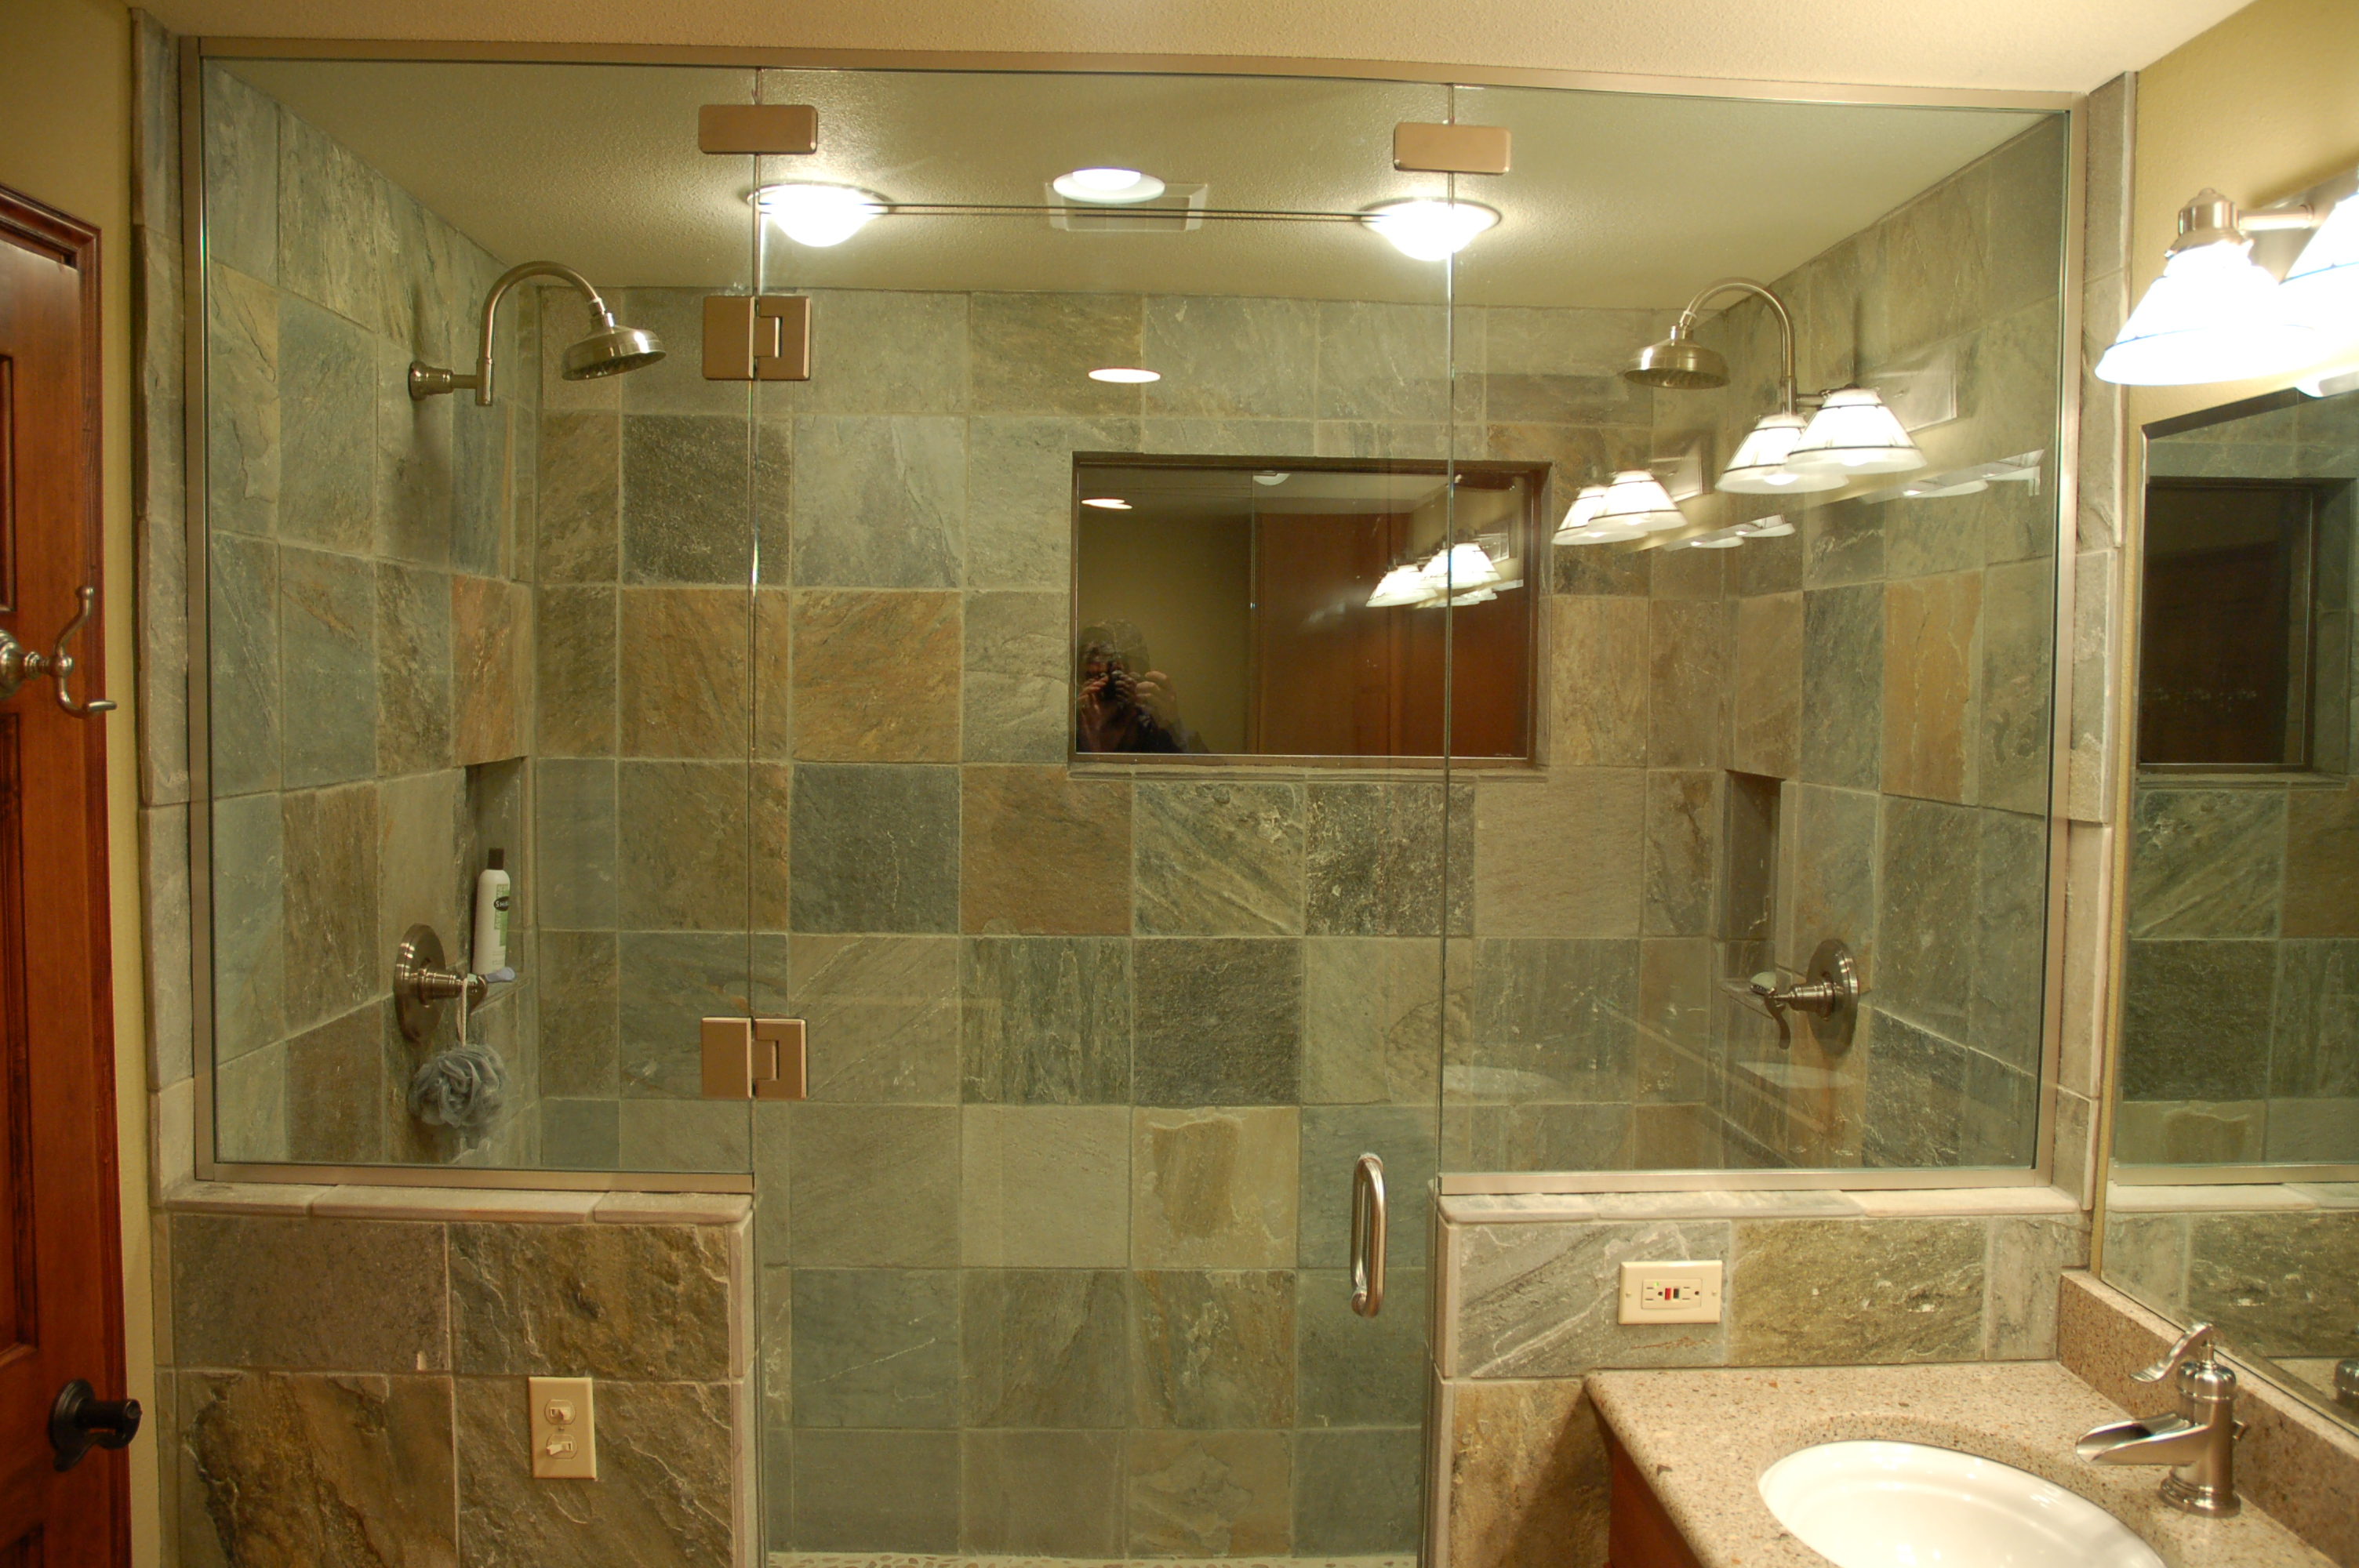 Slate bathroom tile benefits bathroom slate tiles for Bathroom tile designs photos